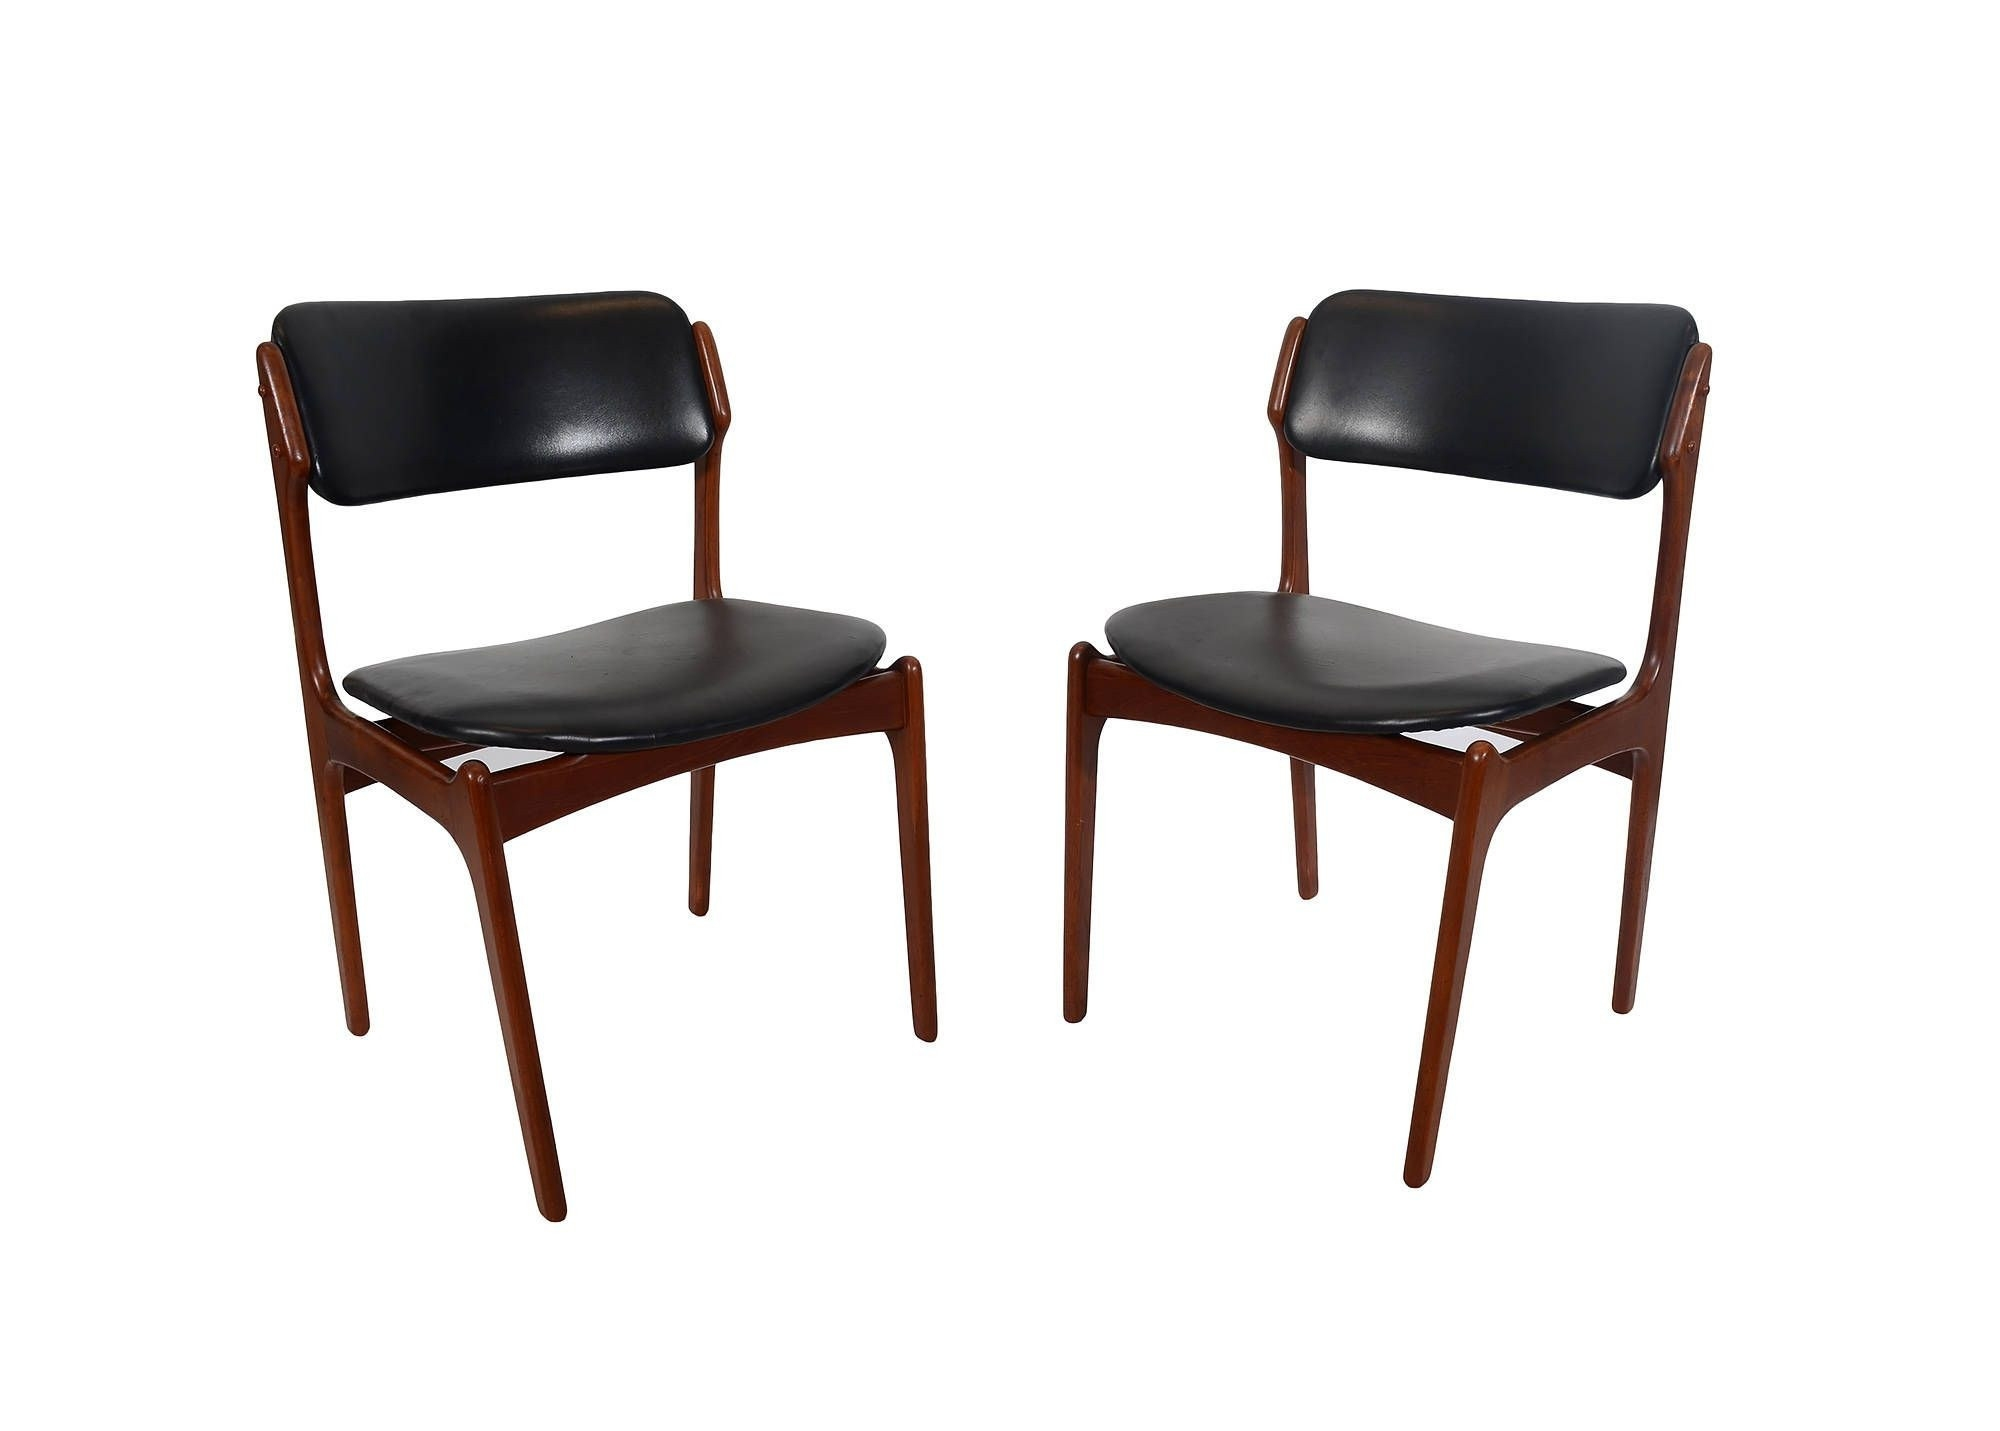 Charming West Elm Dining Room Chairs Or West Elm Leather Dining Layjao